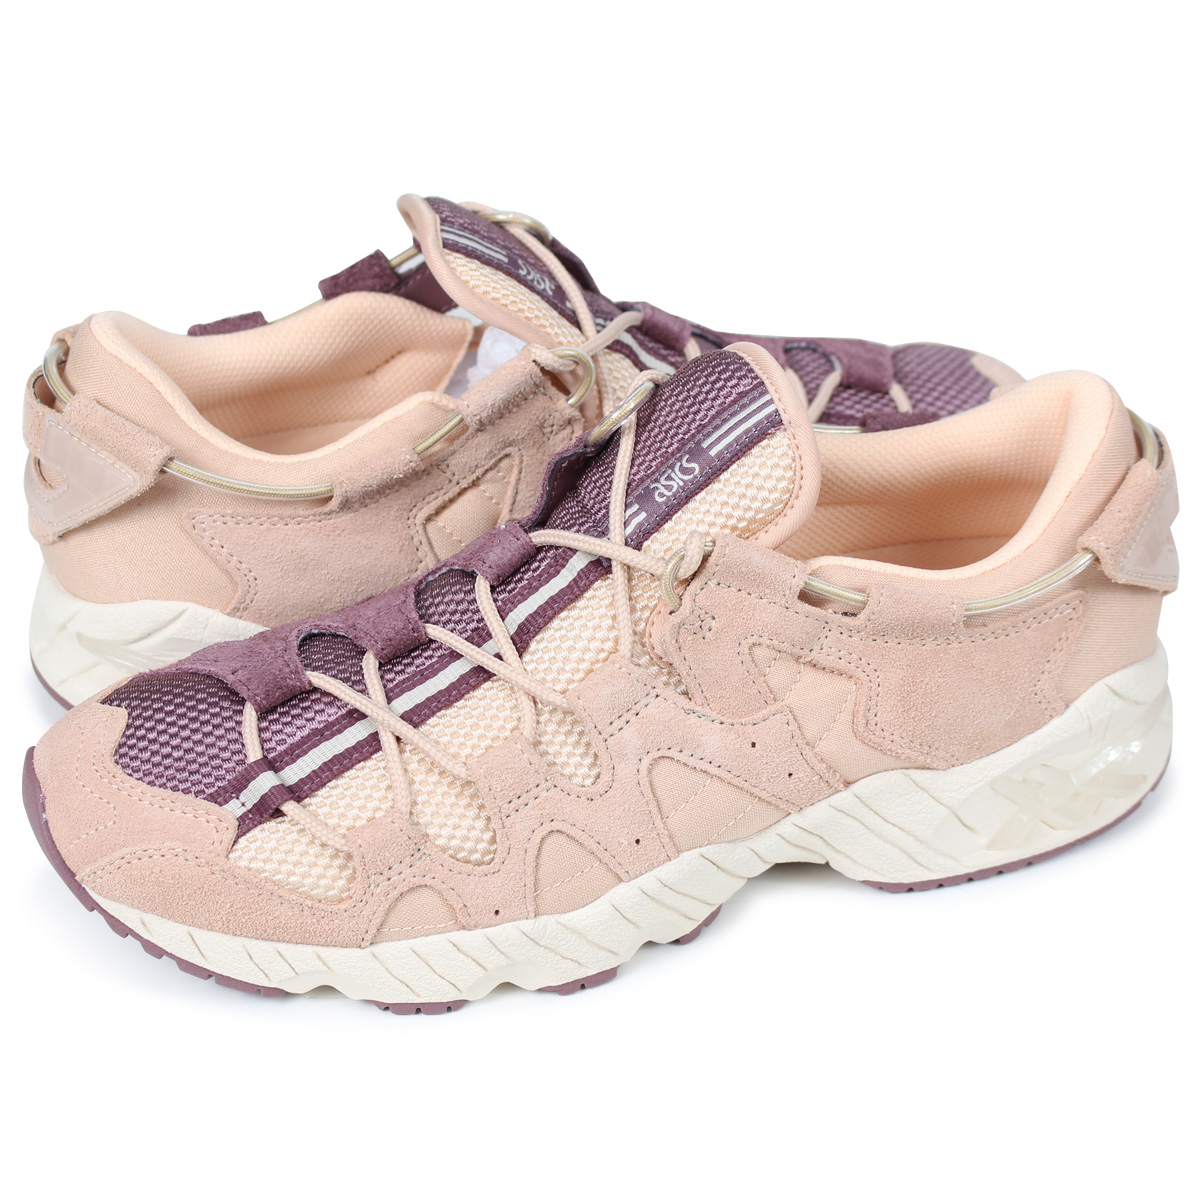 Gel Up Asics Mai Sneakers Tiger Sports Whats wIqzdZZ